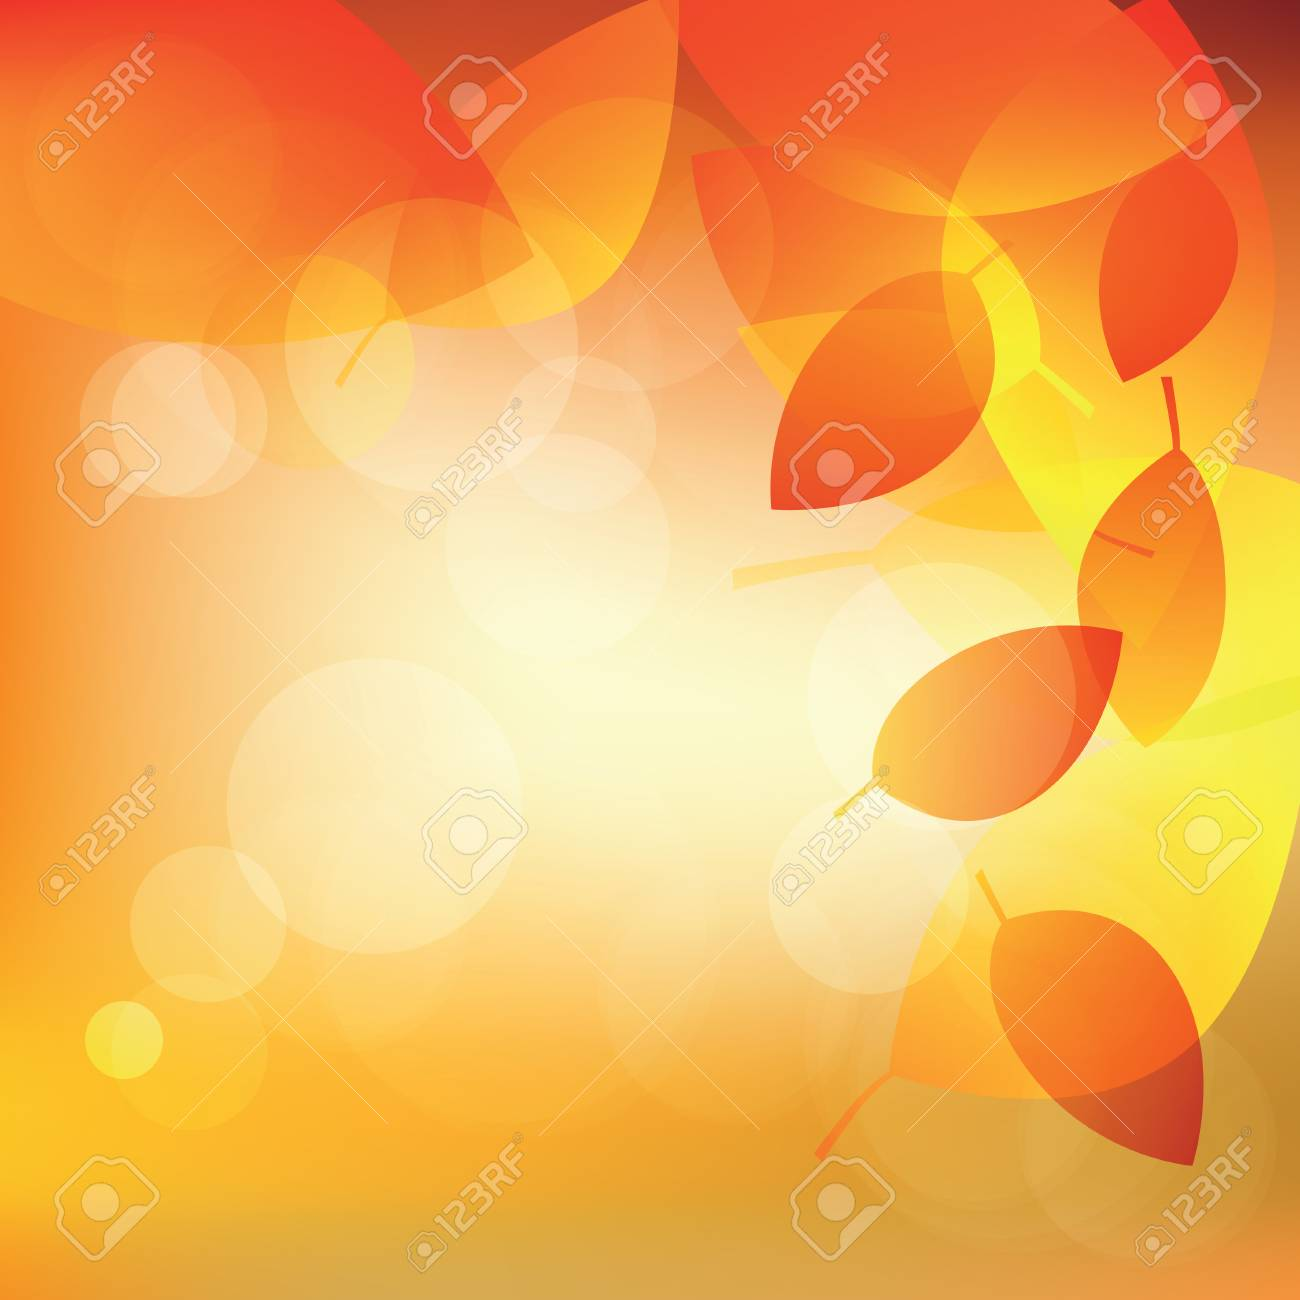 Abstract autumn sunny background with lights and leaves illustration - 62197336